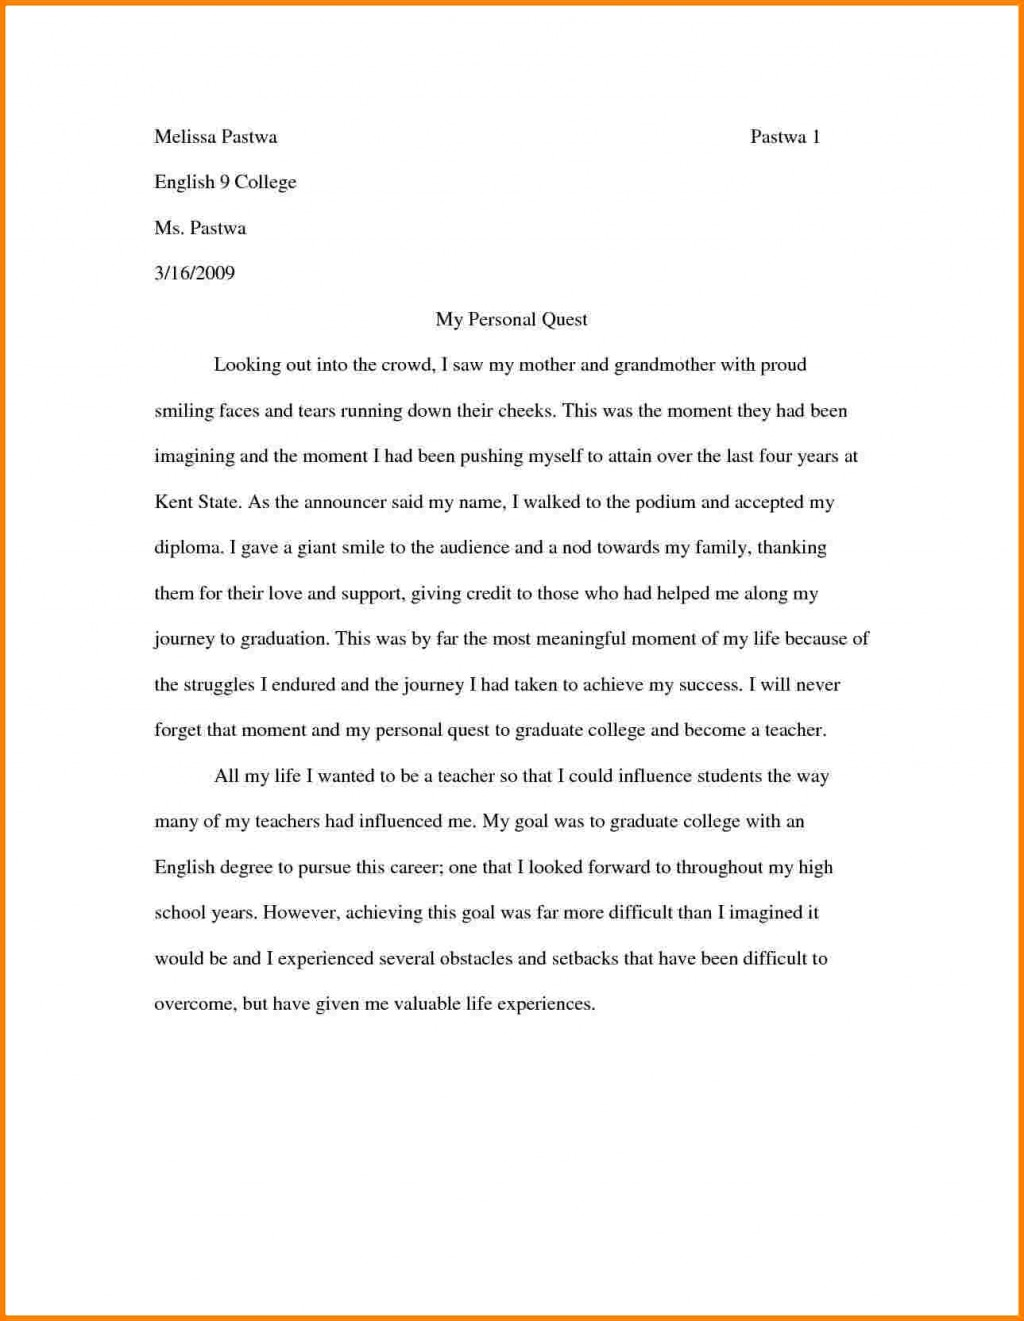 020 3341381556 How To Write Proposal20nt Essay Topics Buy Researchs Cheap Examples20 Good For Awesome Research Papers Argumentative In College Interesting Paper The Philippines Large